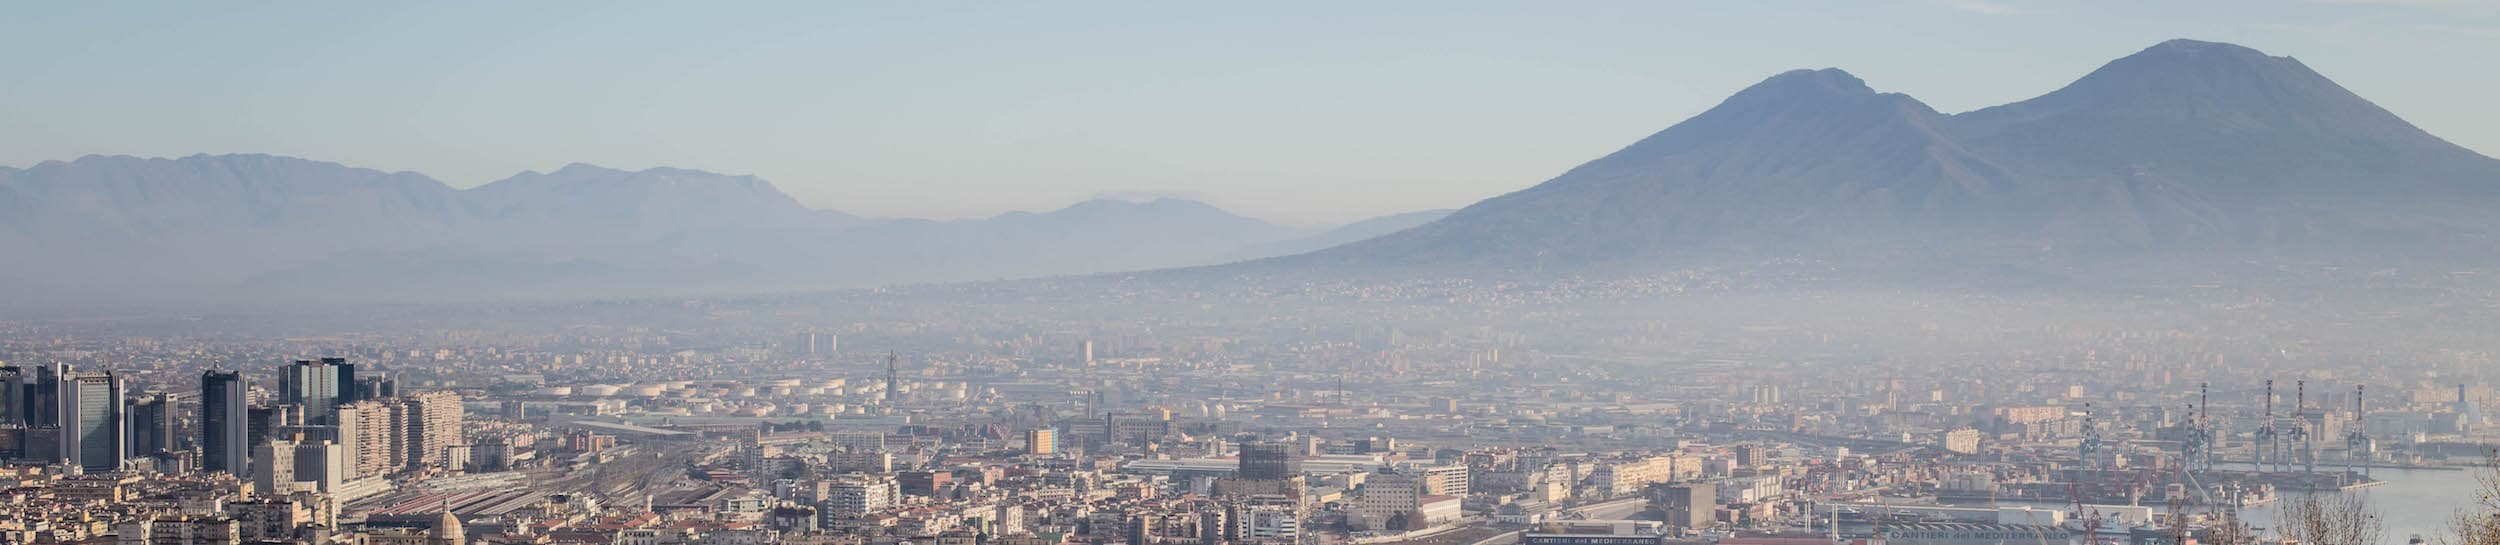 Skyline of Naples